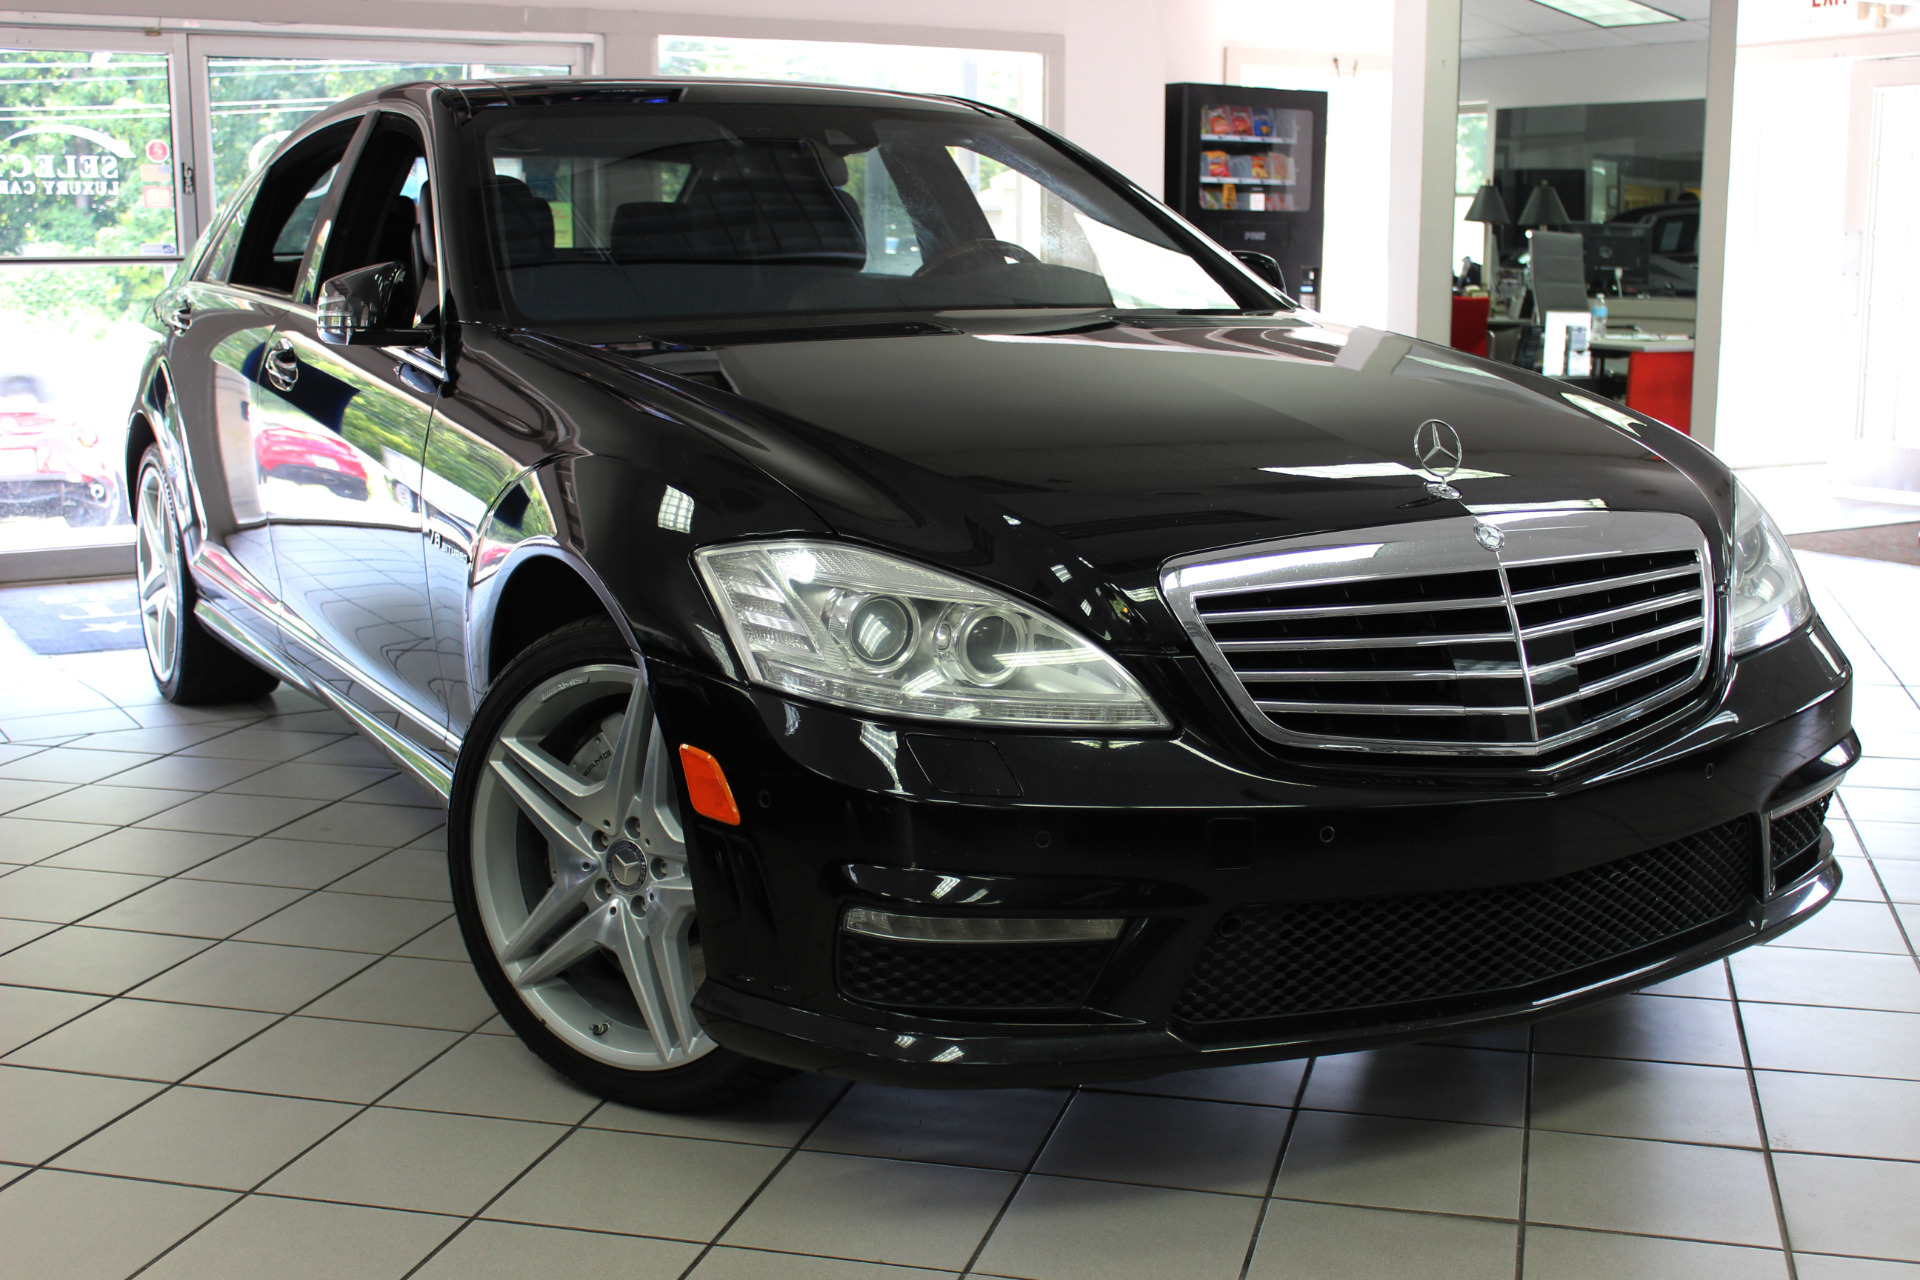 used 2011 mercedes benz s class s63 amg marietta ga. Black Bedroom Furniture Sets. Home Design Ideas